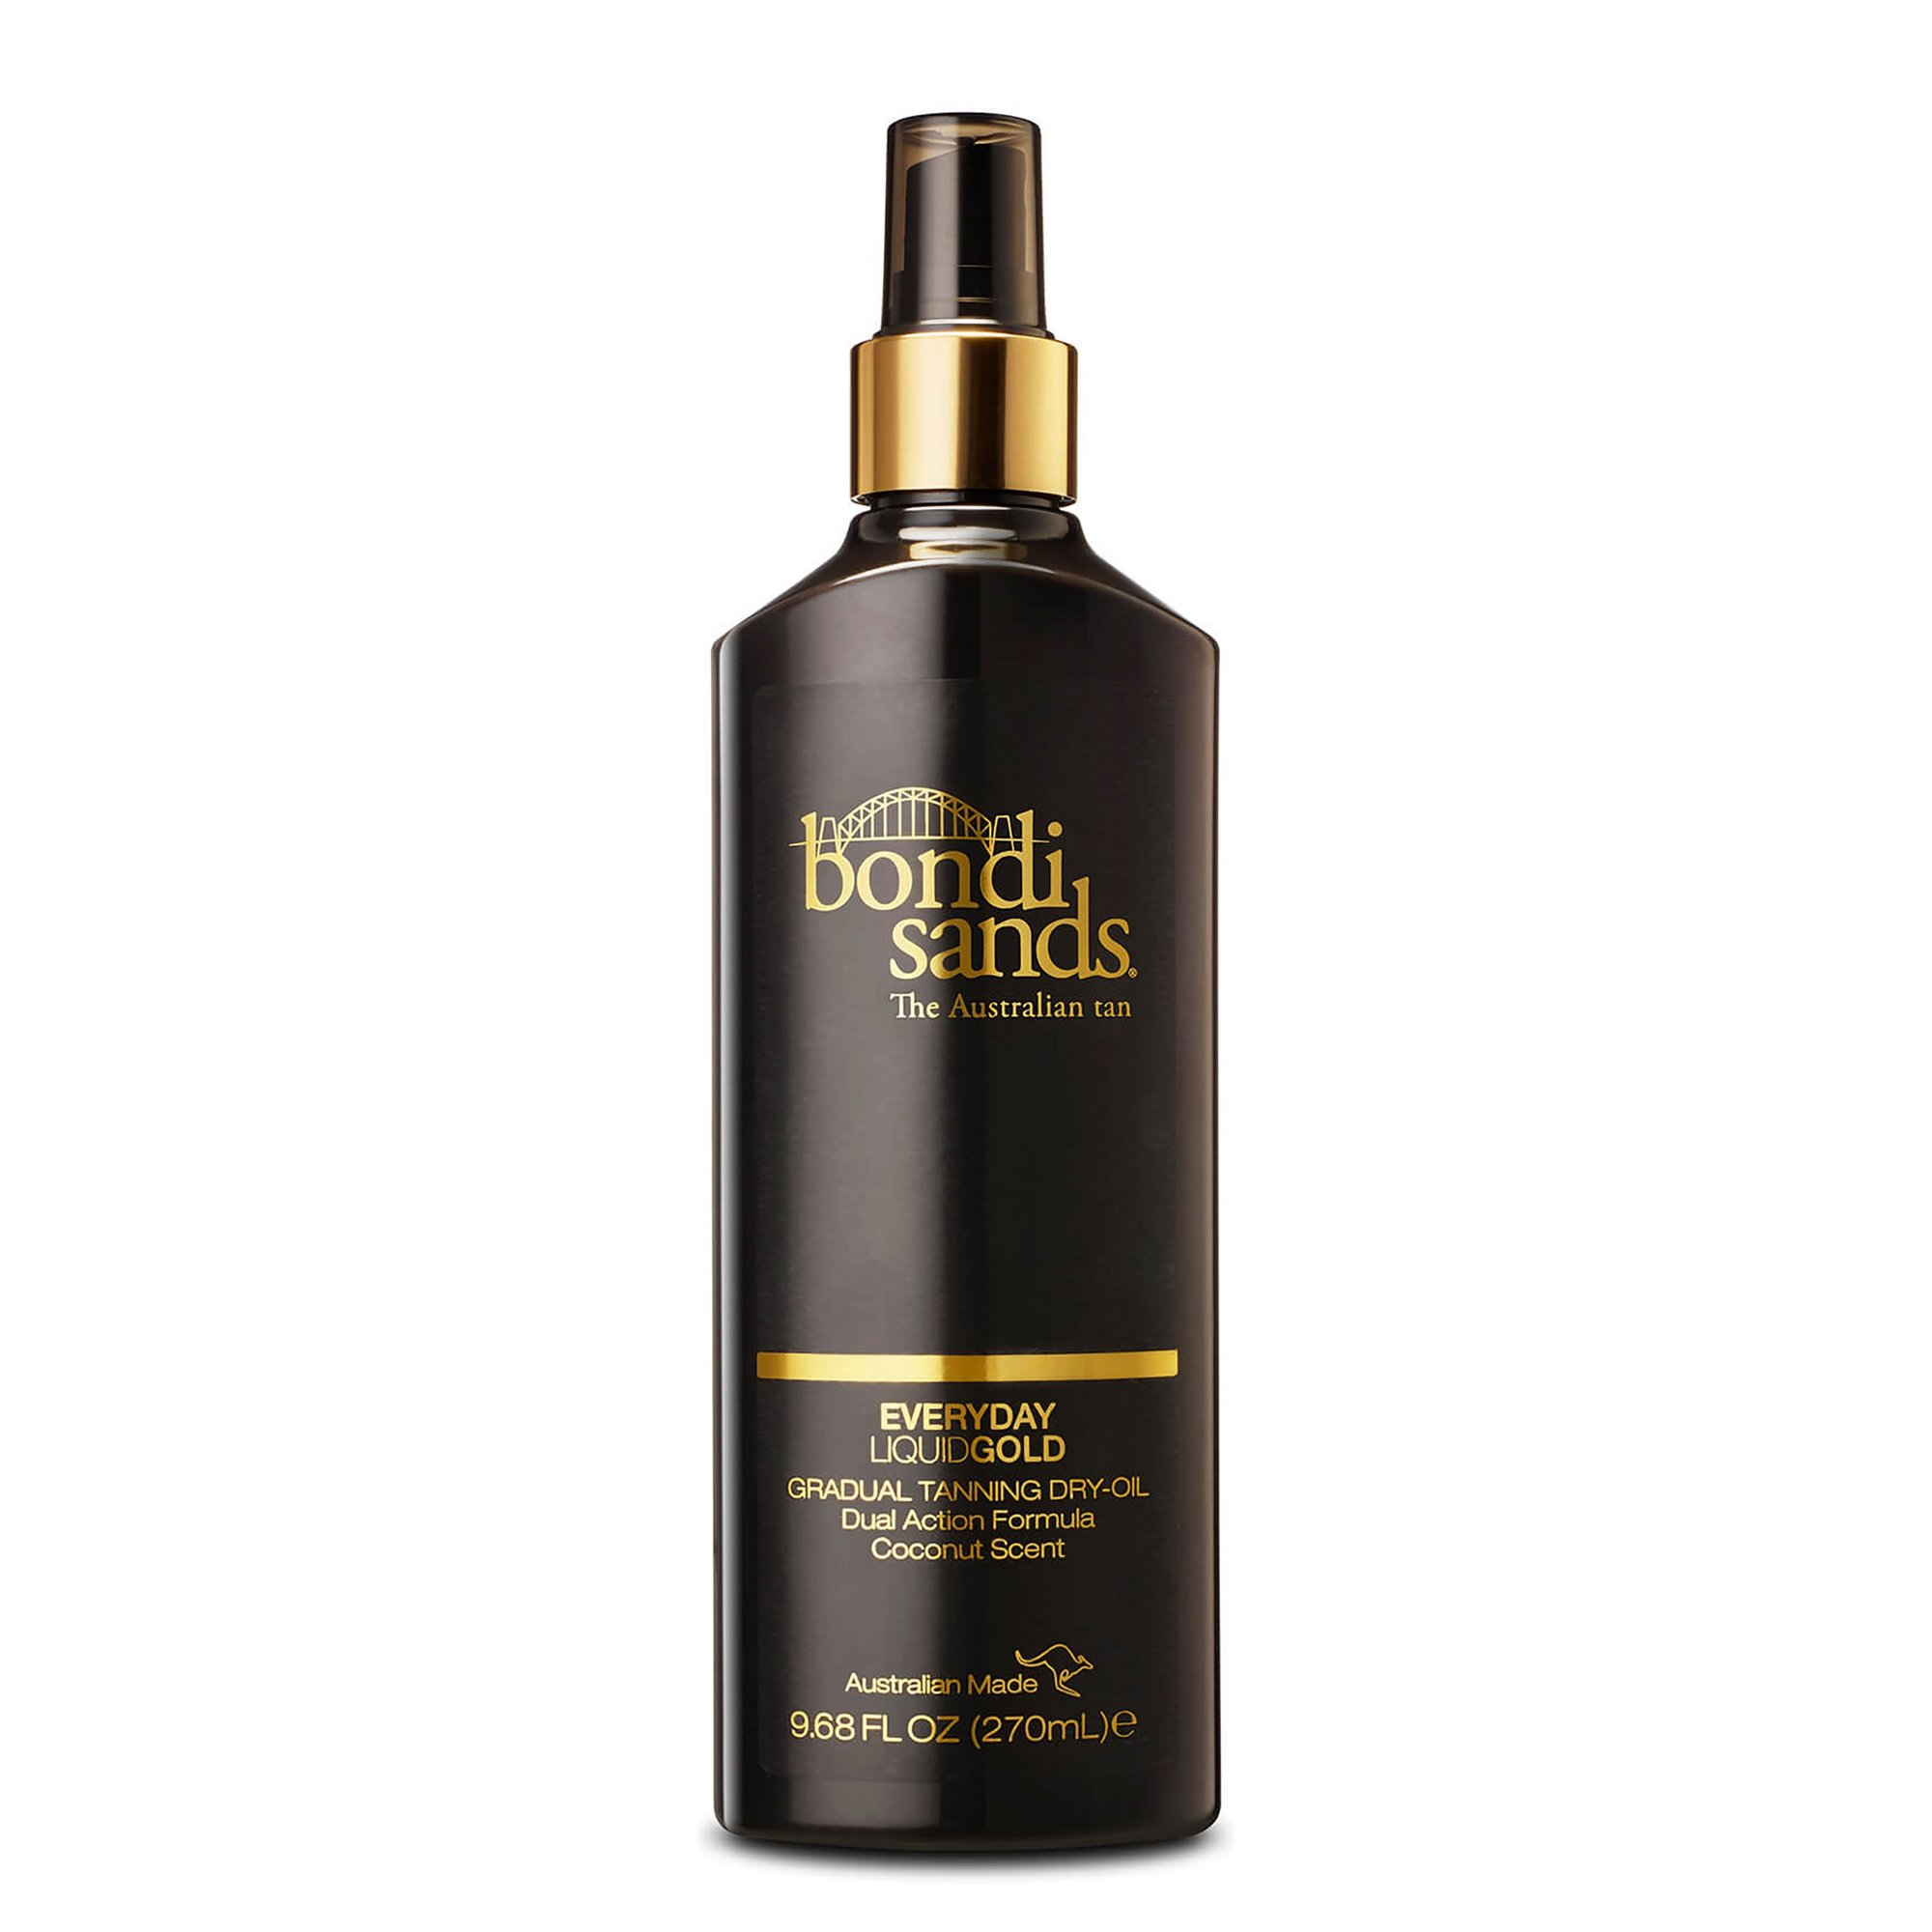 Image of Bondi Sands 270ml Everyday Gradual Tanning Oil in Liquid Gold